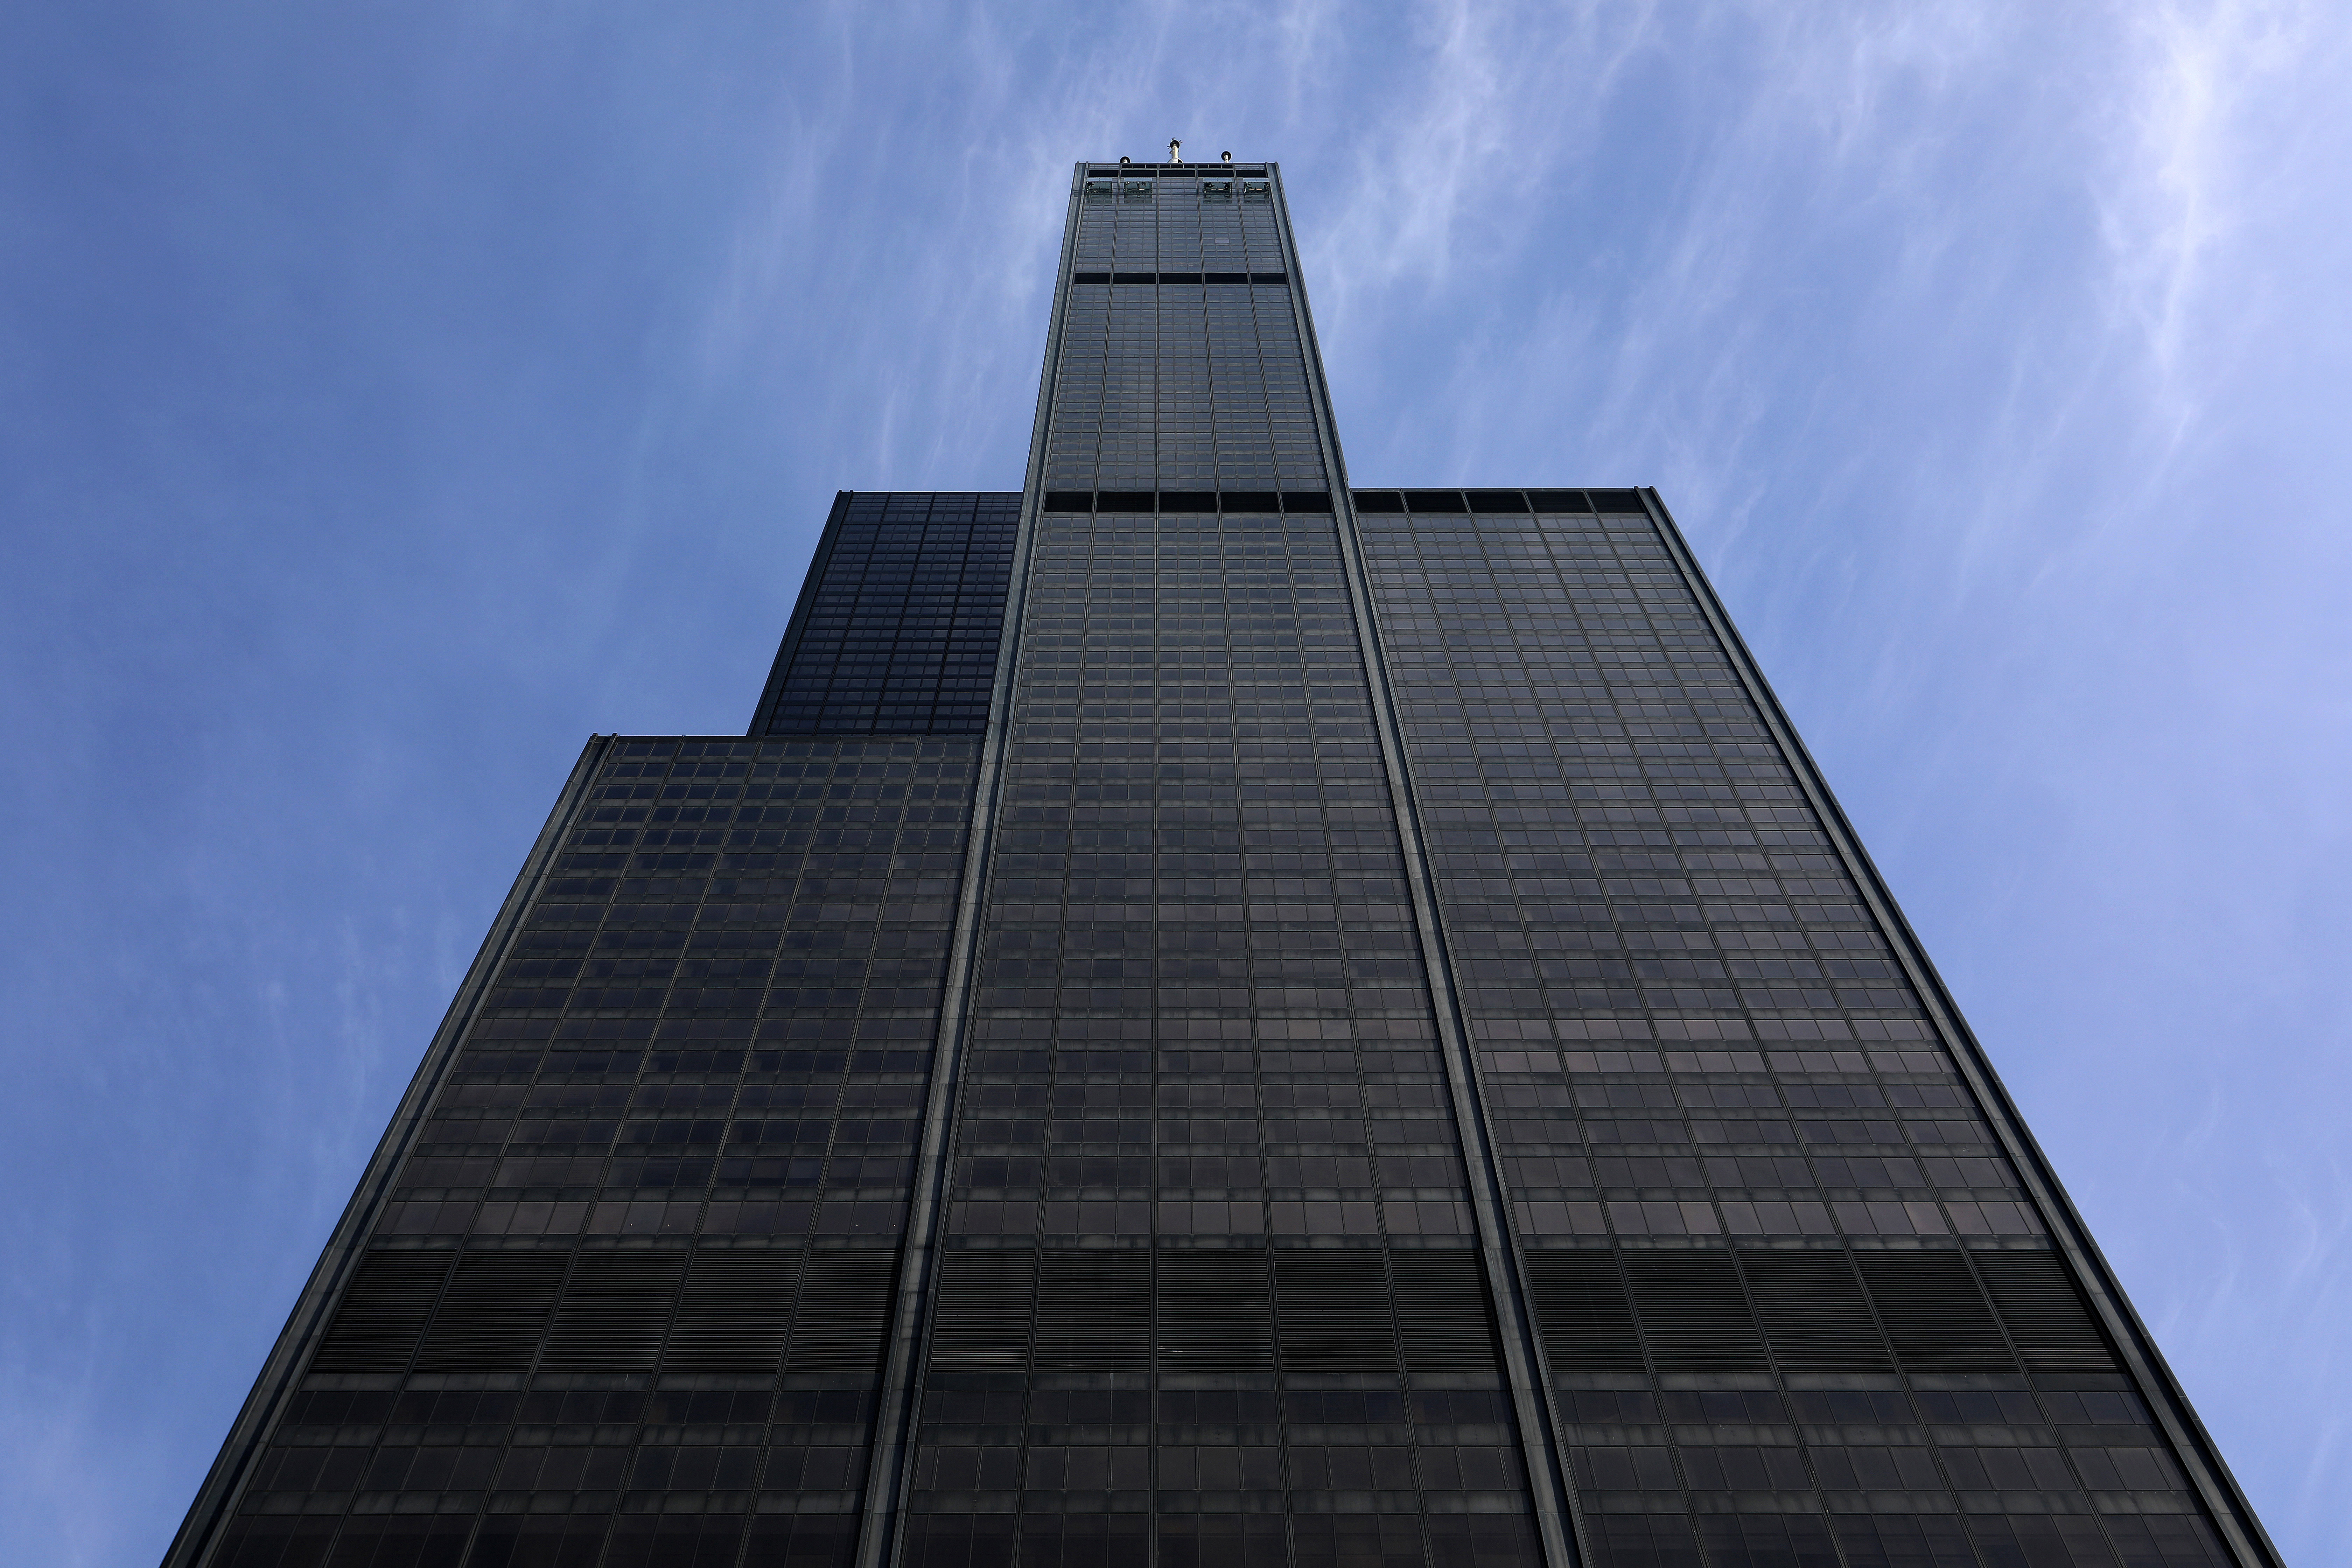 A view of a black skyscraper from the bottom looking all the way up